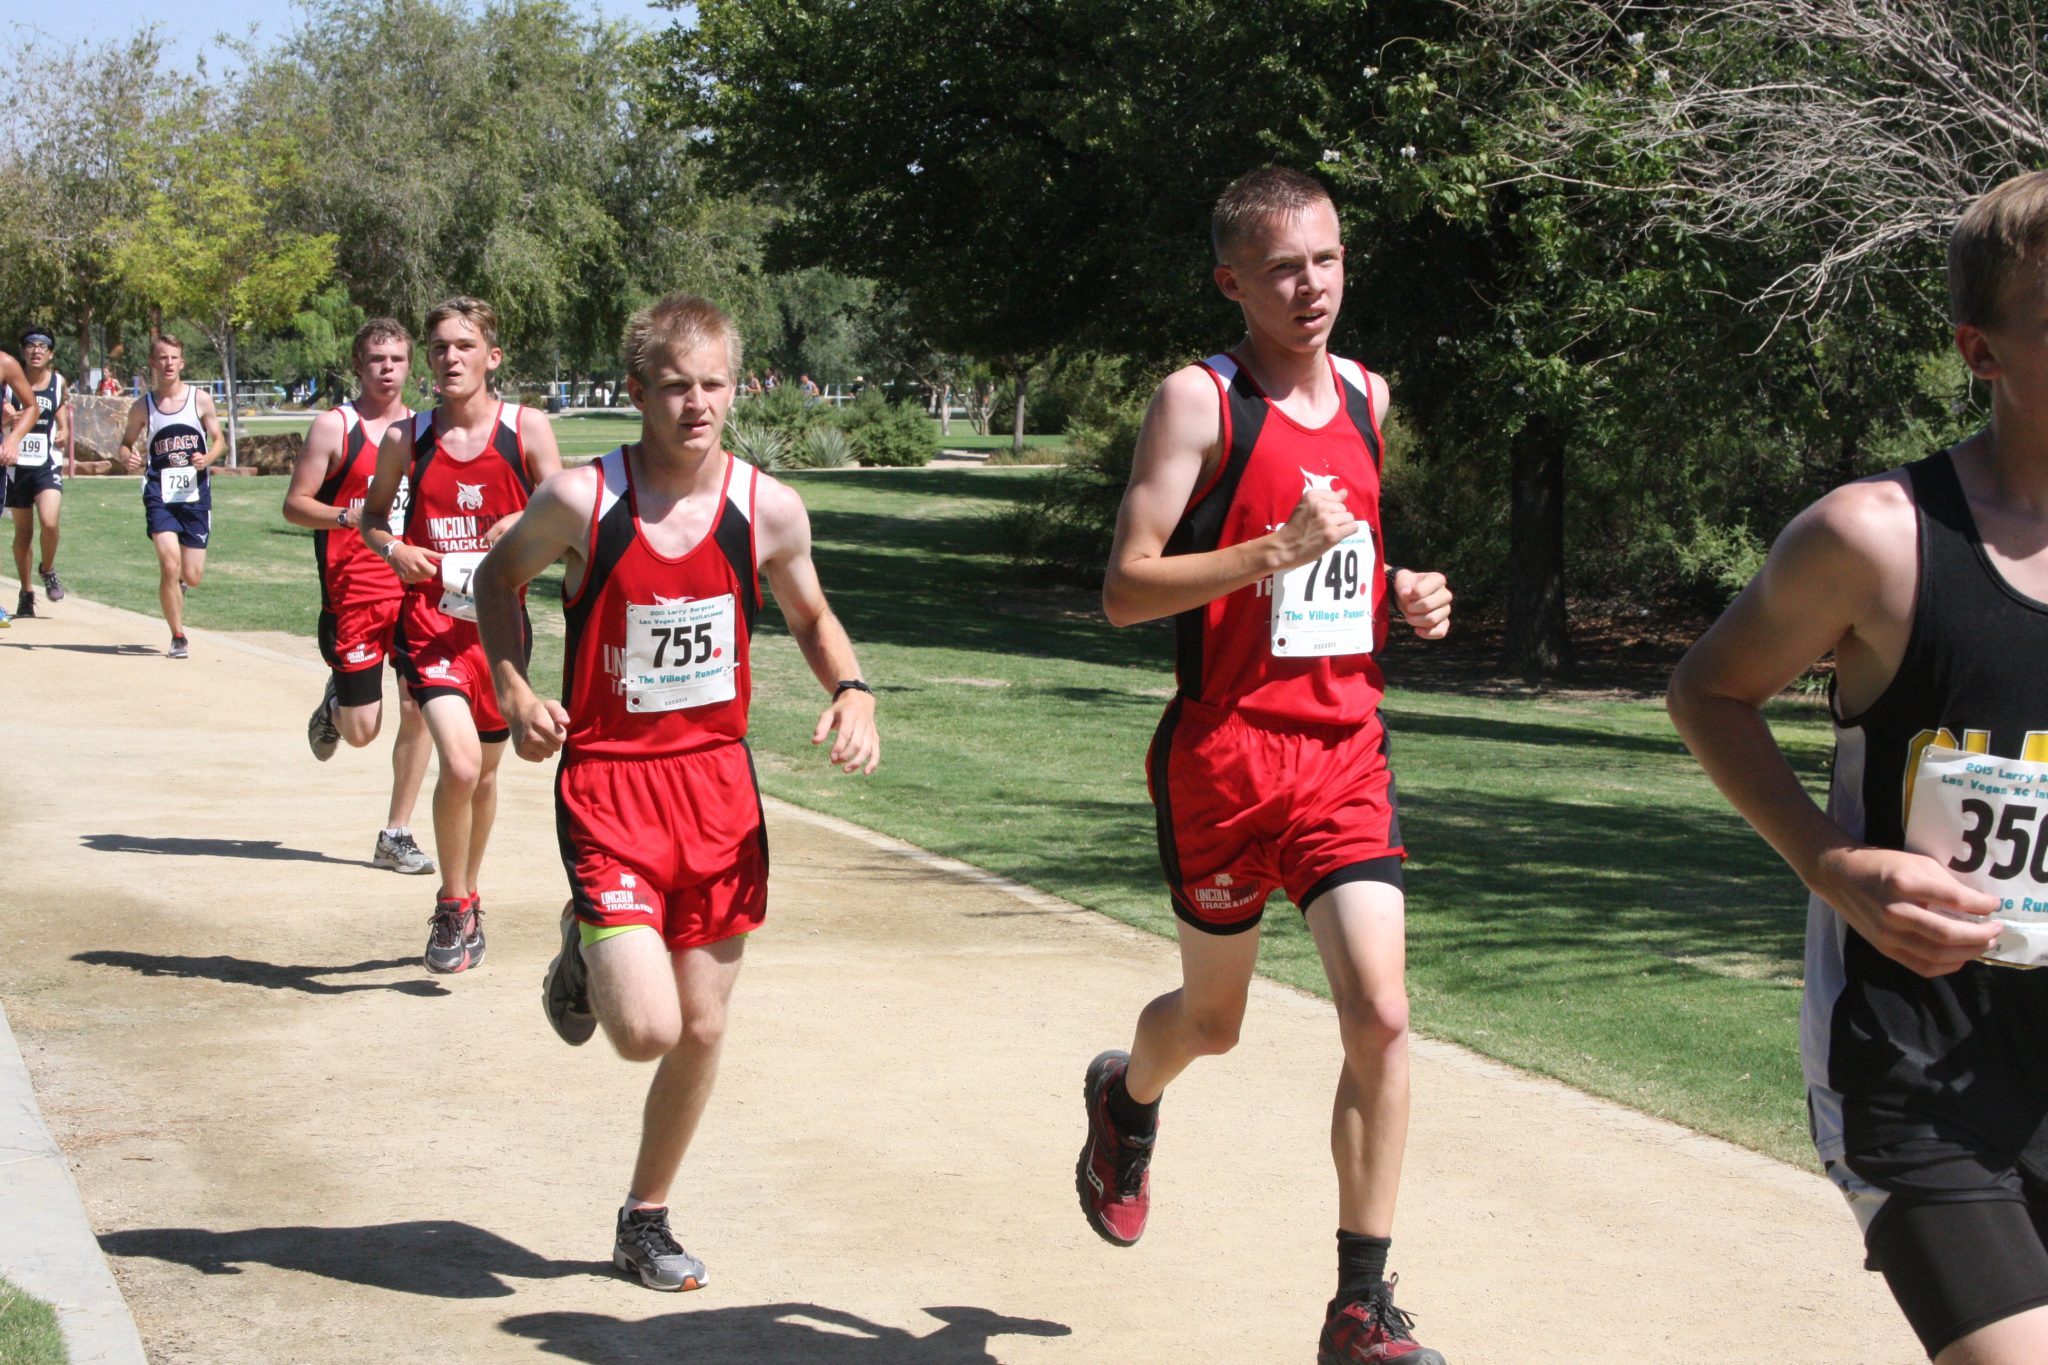 Lincoln cross country team takes 8th in Boulder City